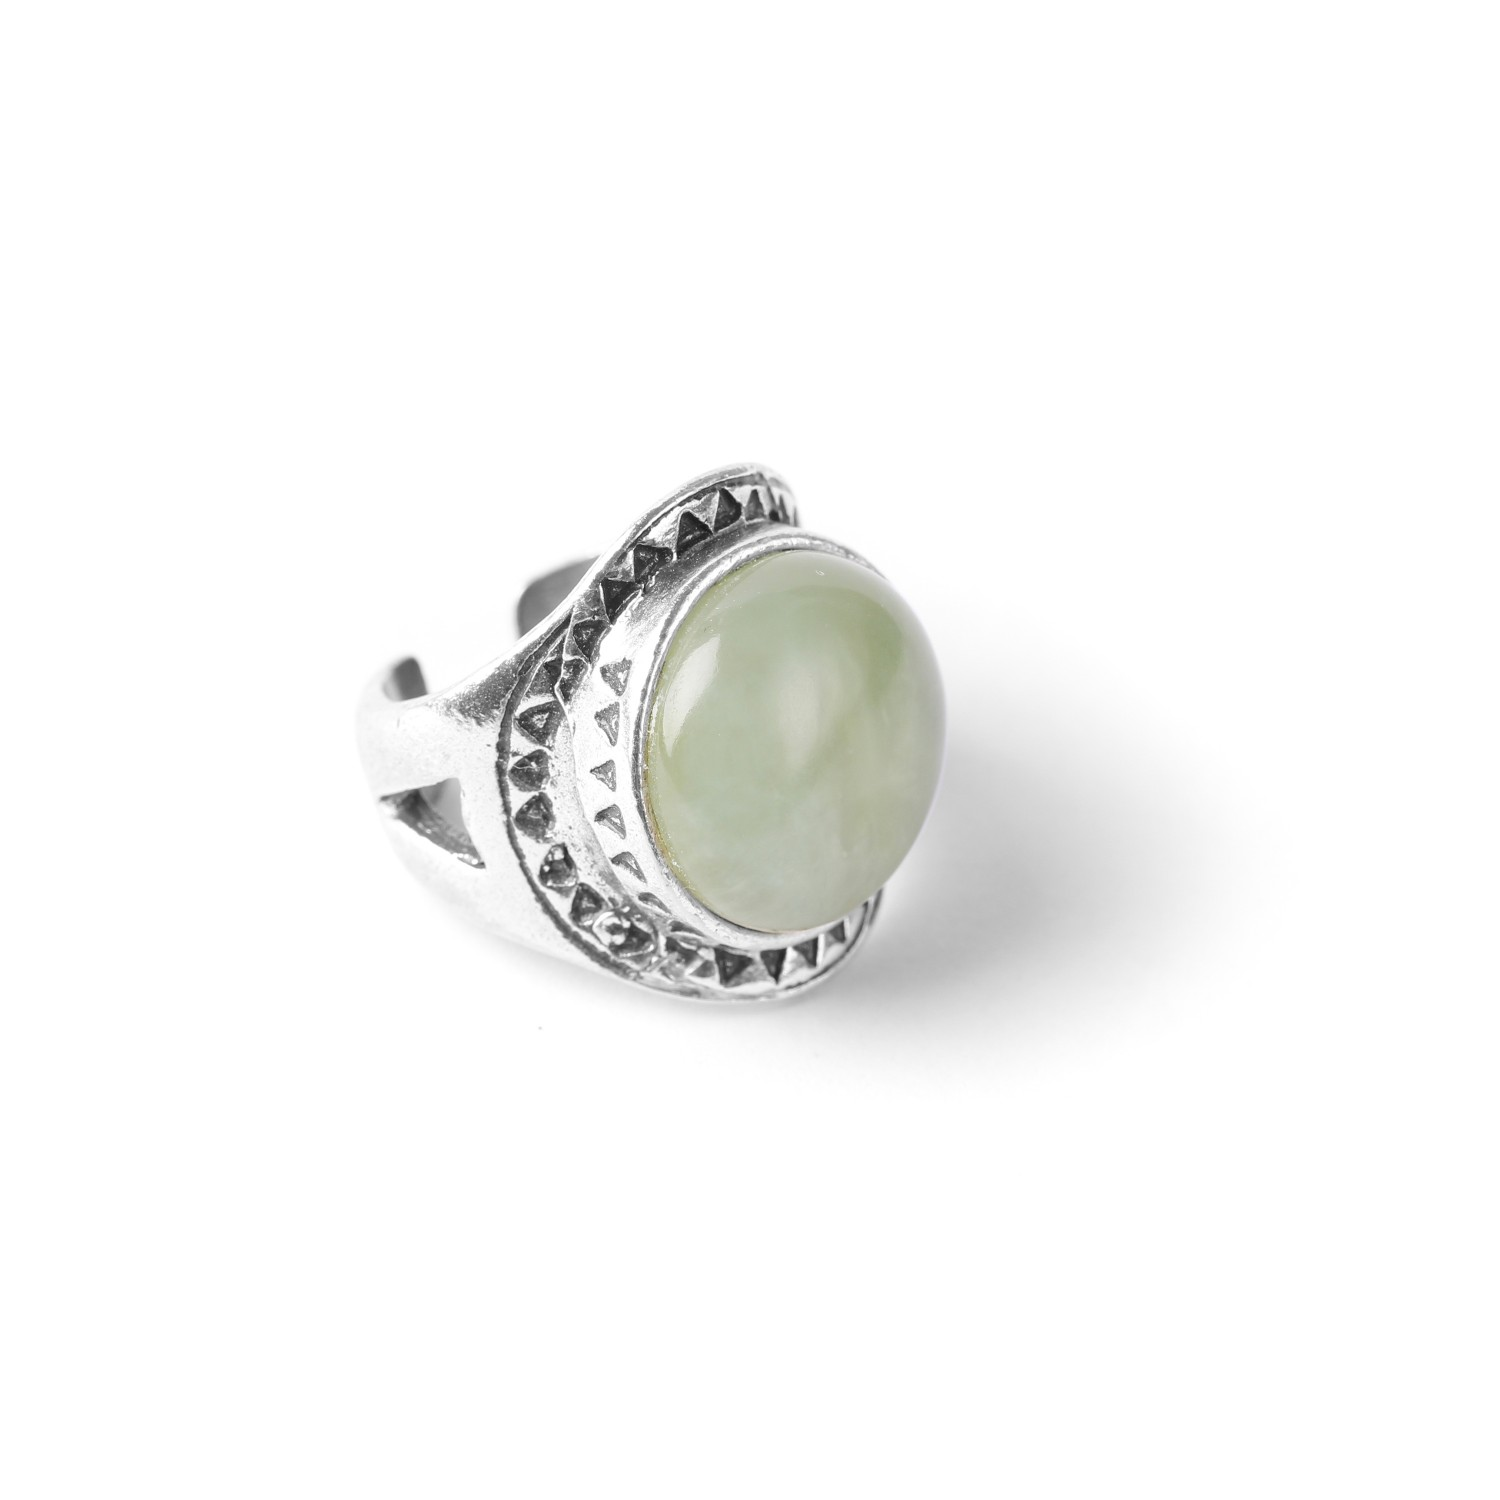 LES CHEVALIERES green stone ring